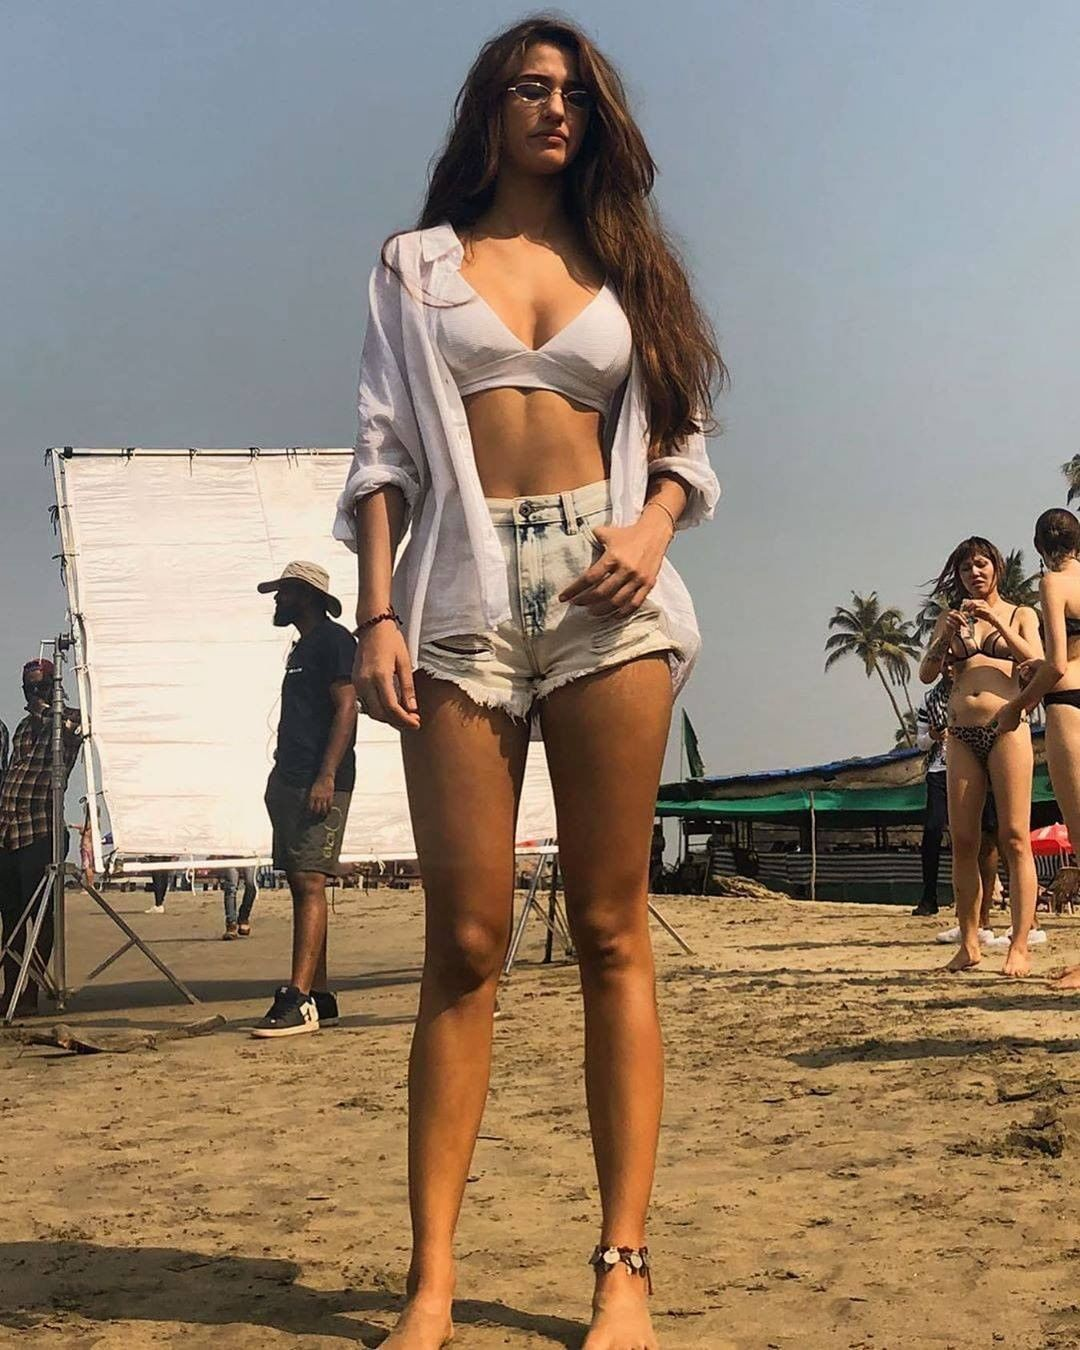 @dishapatani treats her fans with a BTS from the sets of 'Malang' @thesince_news  . . . #dishapatani #instalike #love #hot #dishapatani #bts #malang #gorgeous #smile #pose #bollywoodactress #sunkissed #thesince